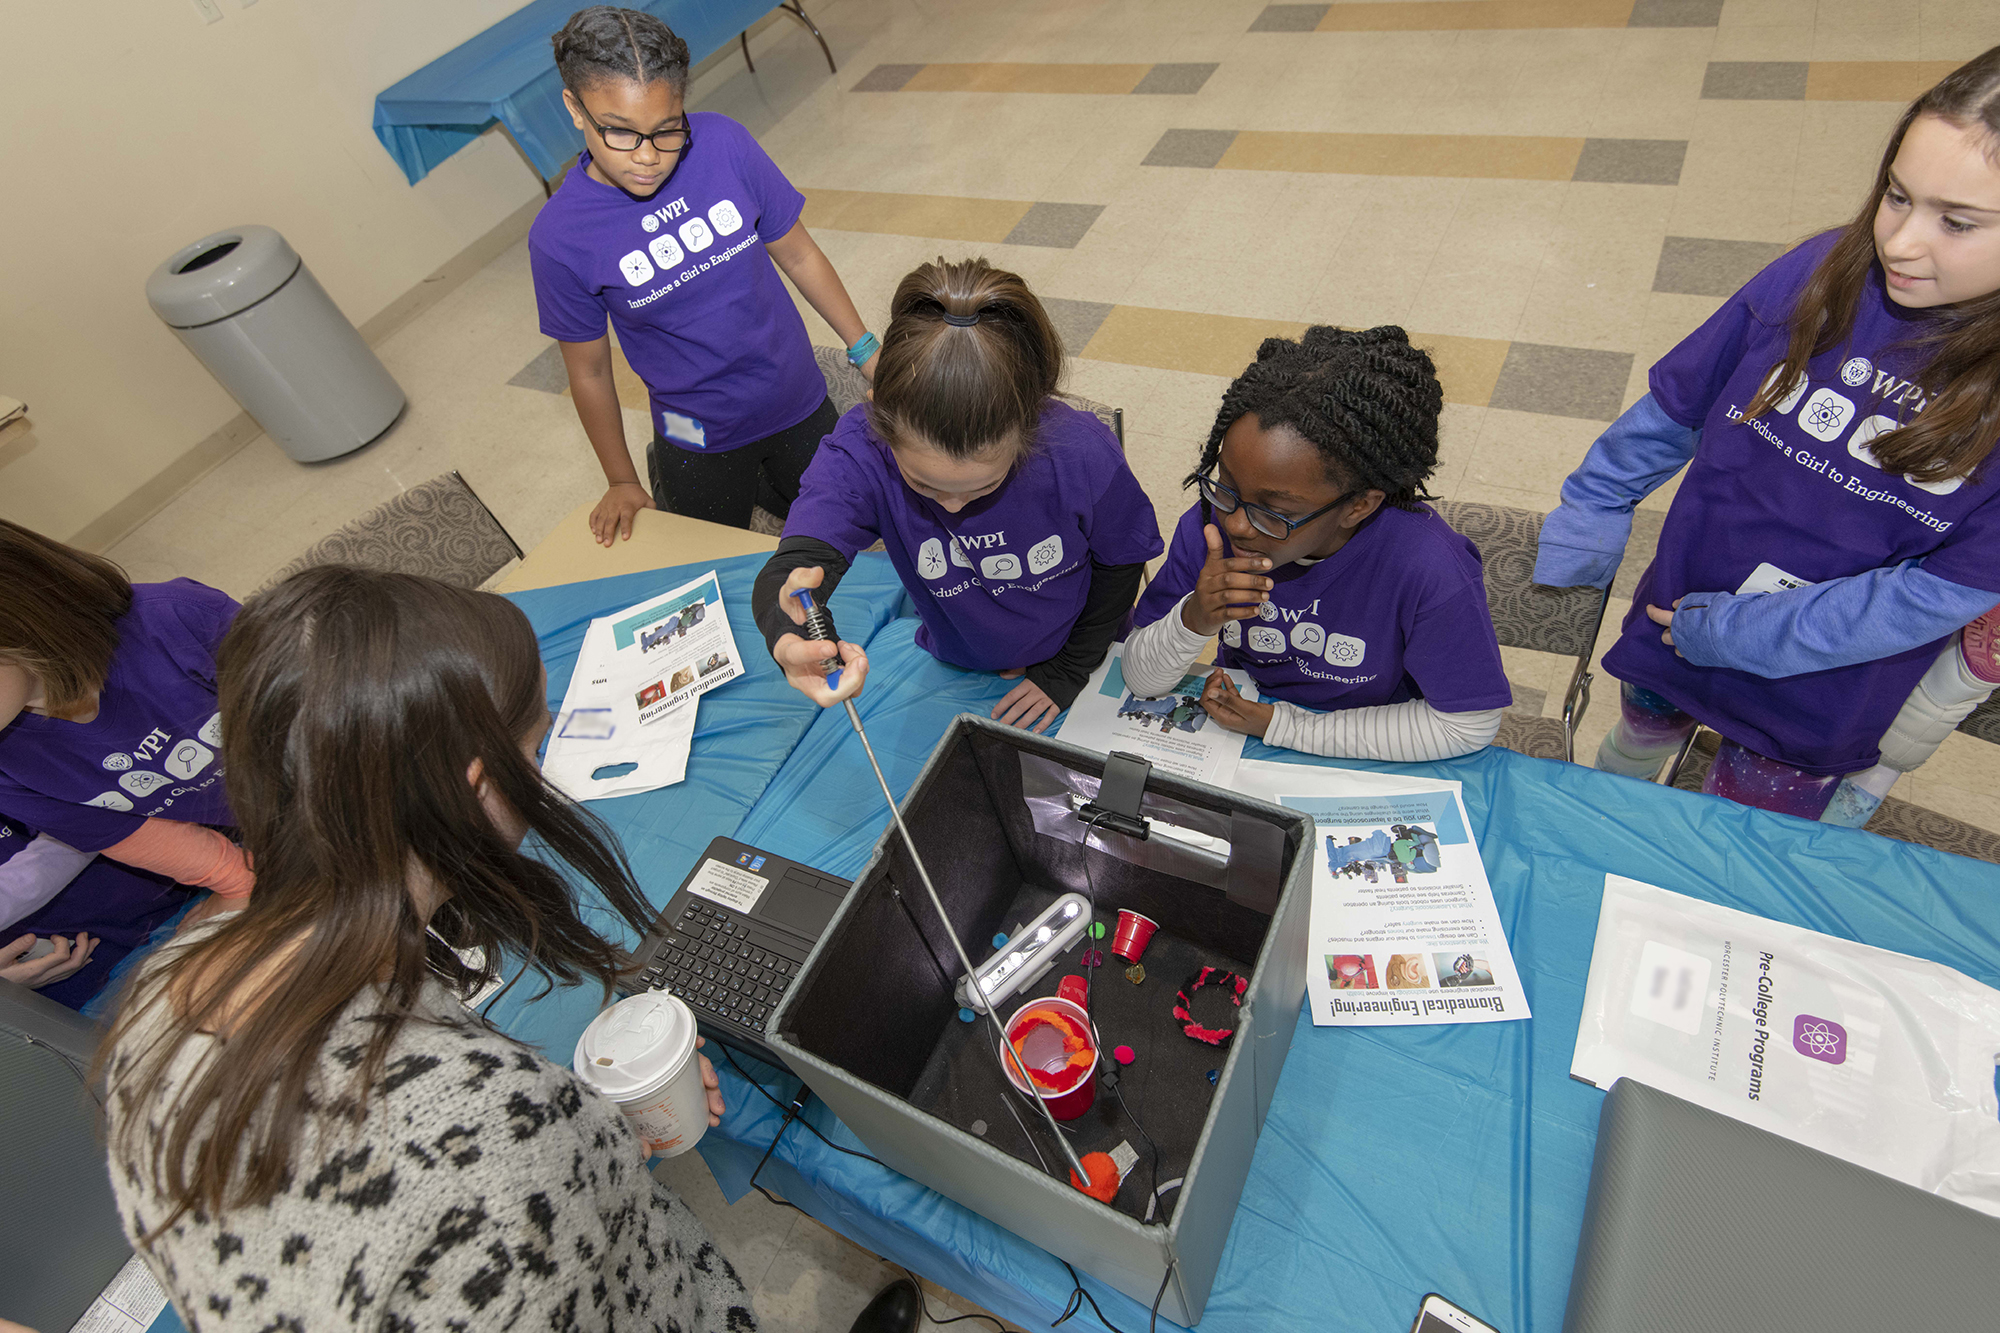 Group of girls at a table playing with an experiment related to Biomedical Engineering